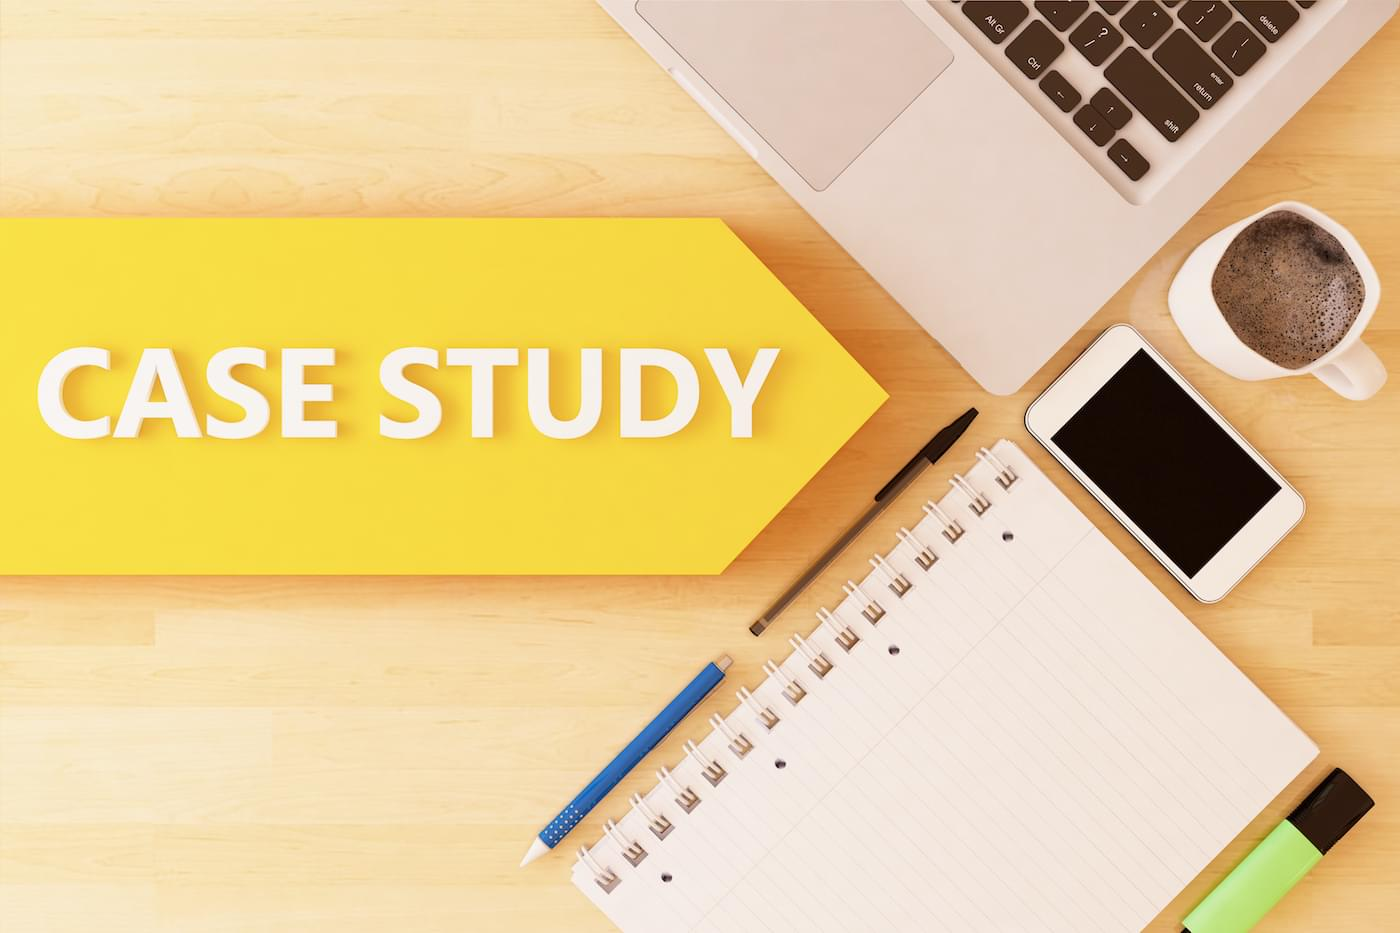 The power behind customer case studies and testimonials